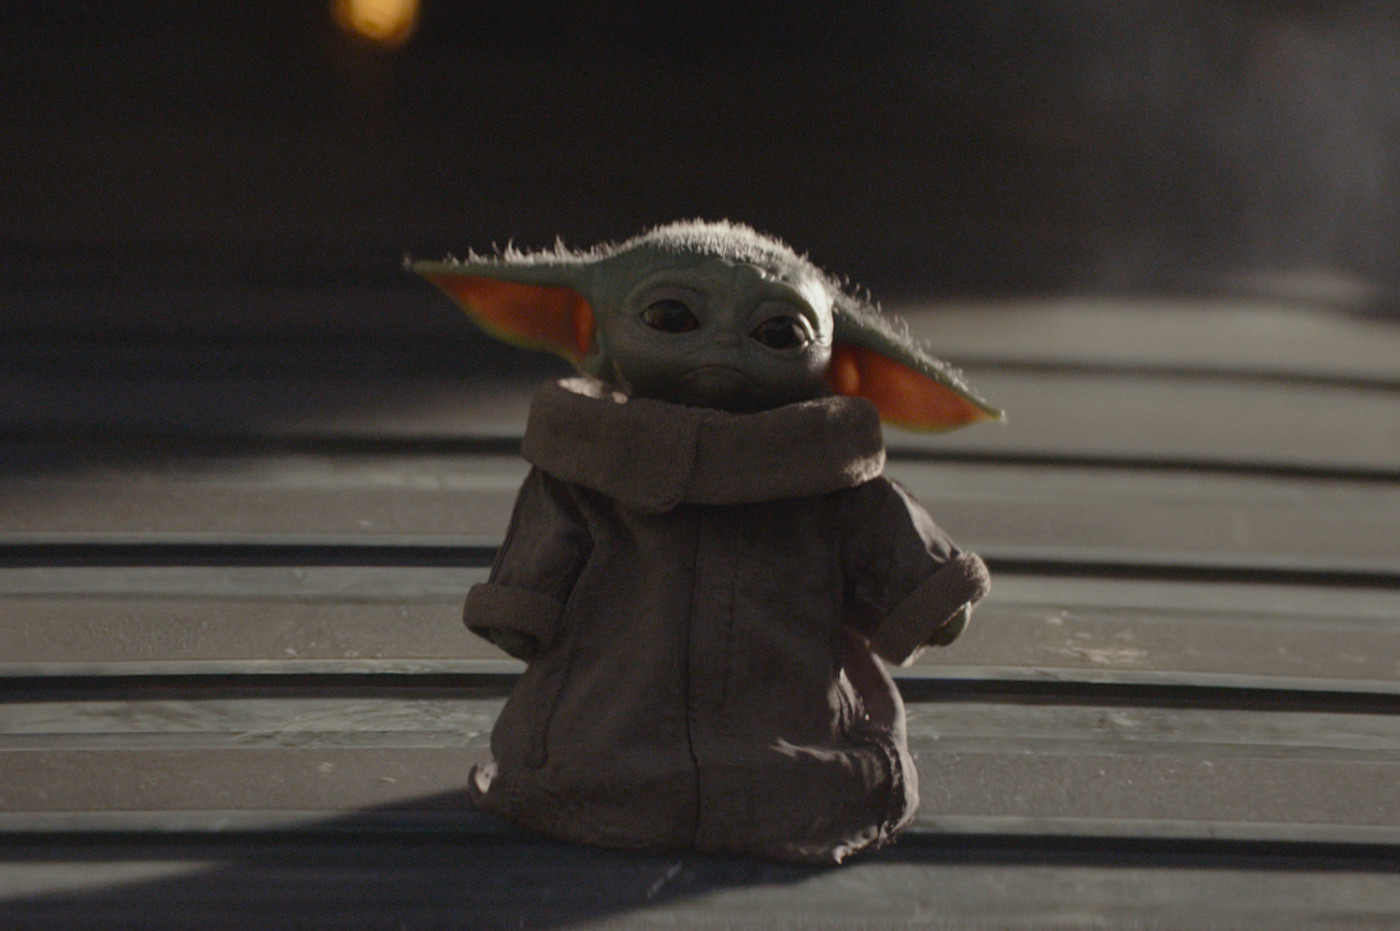 Baby Yoda Brief Timeline Of The Mandalorian Star Wars Character Complex